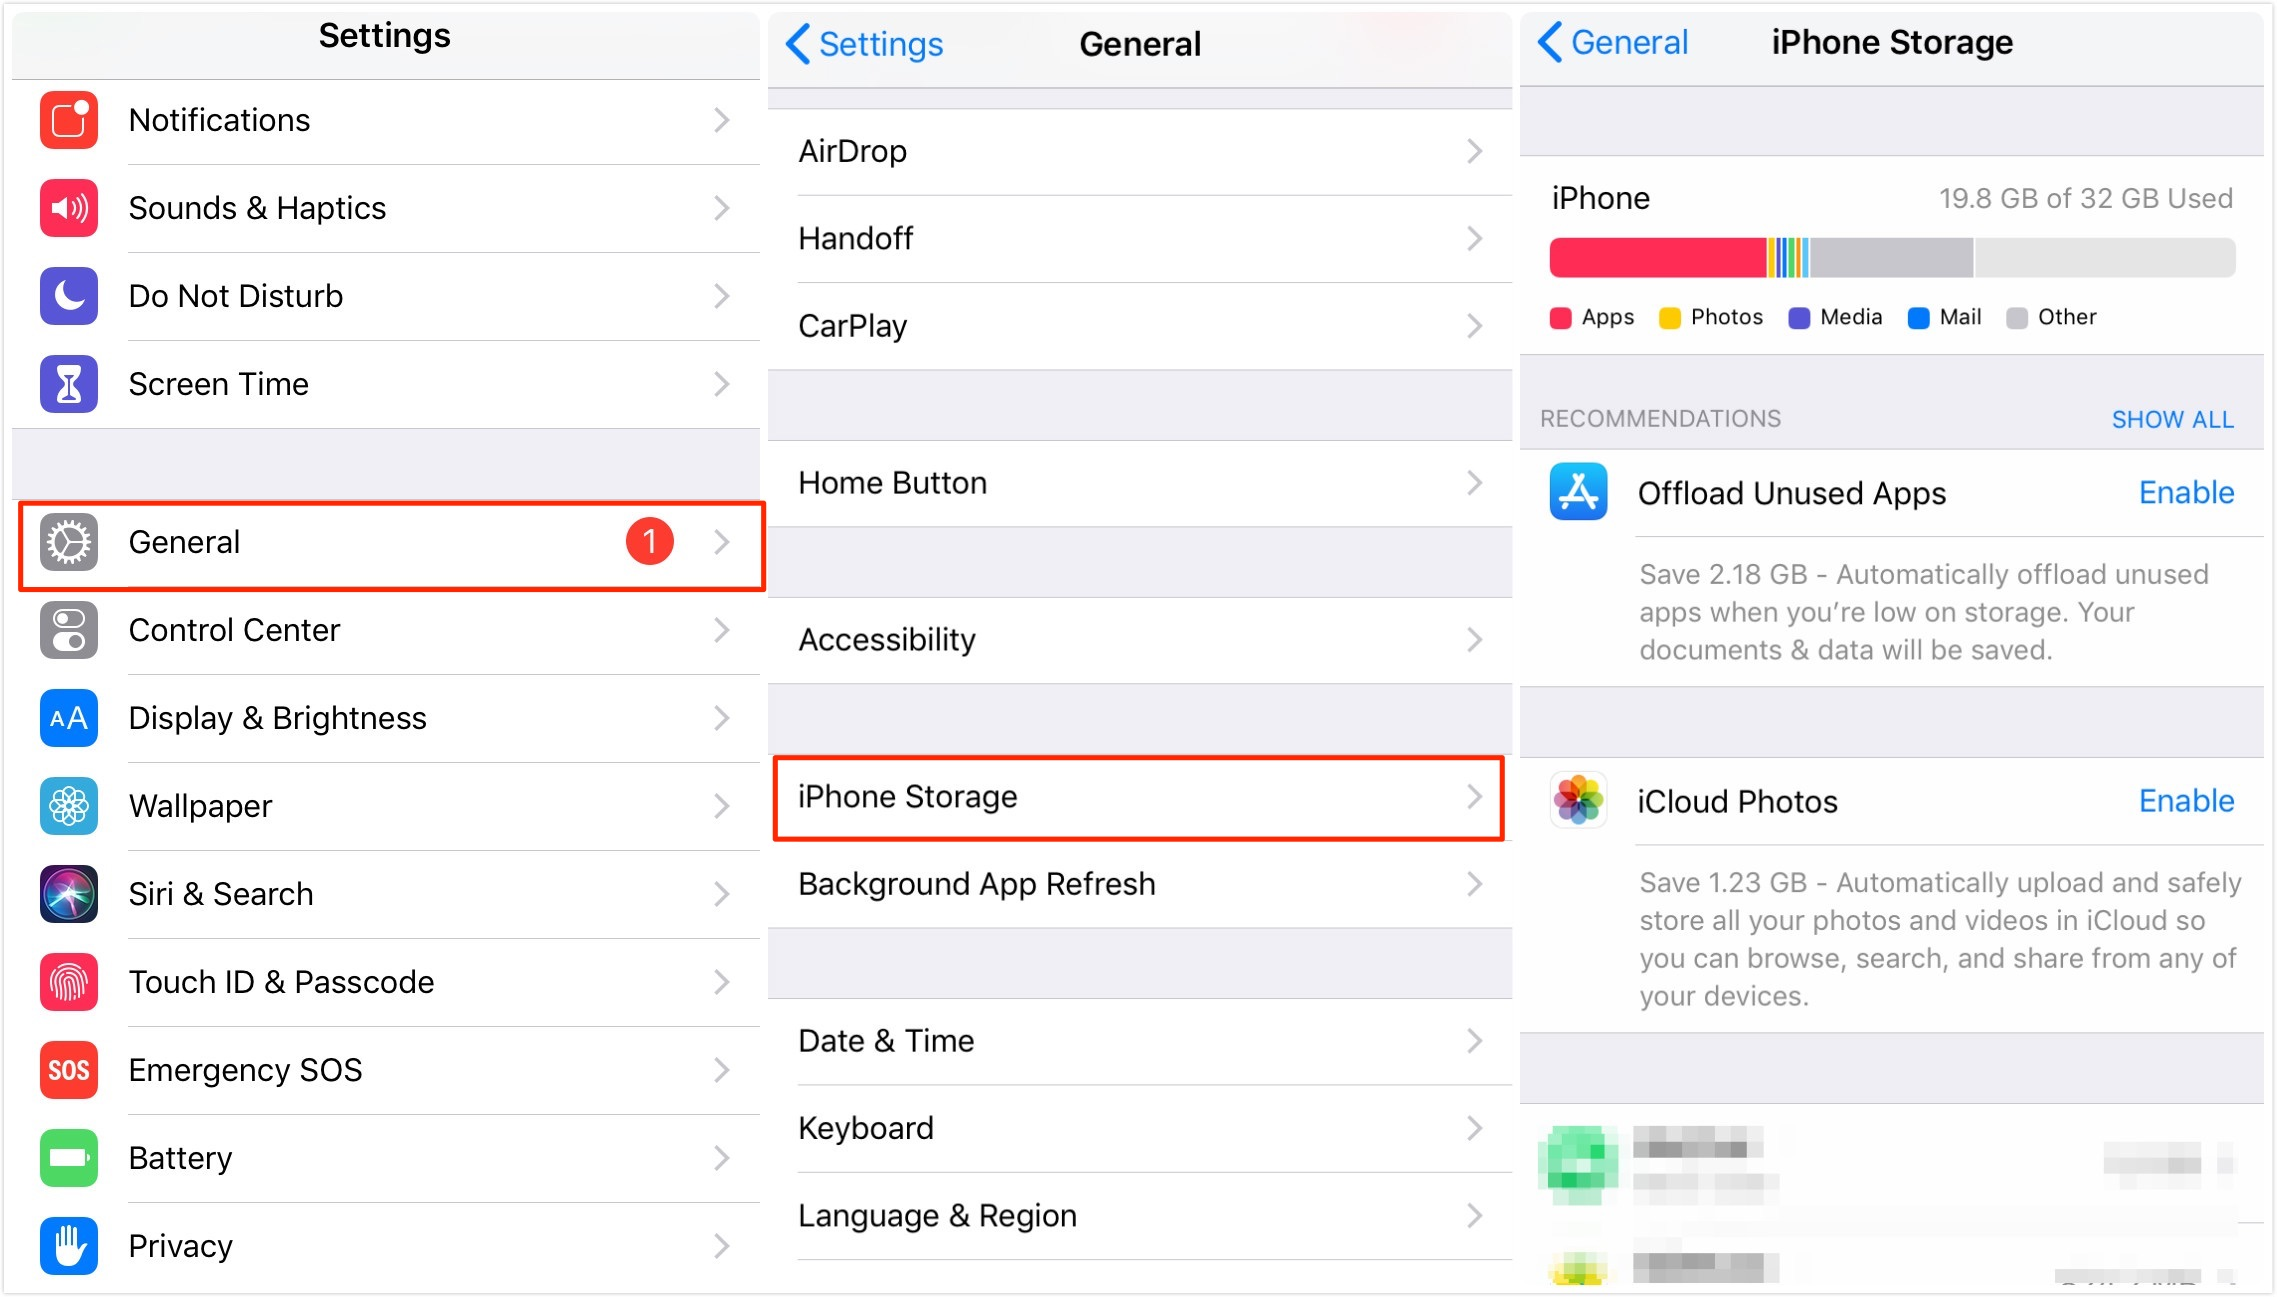 Fix: Error Downloading Photo from iCloud Photo Library